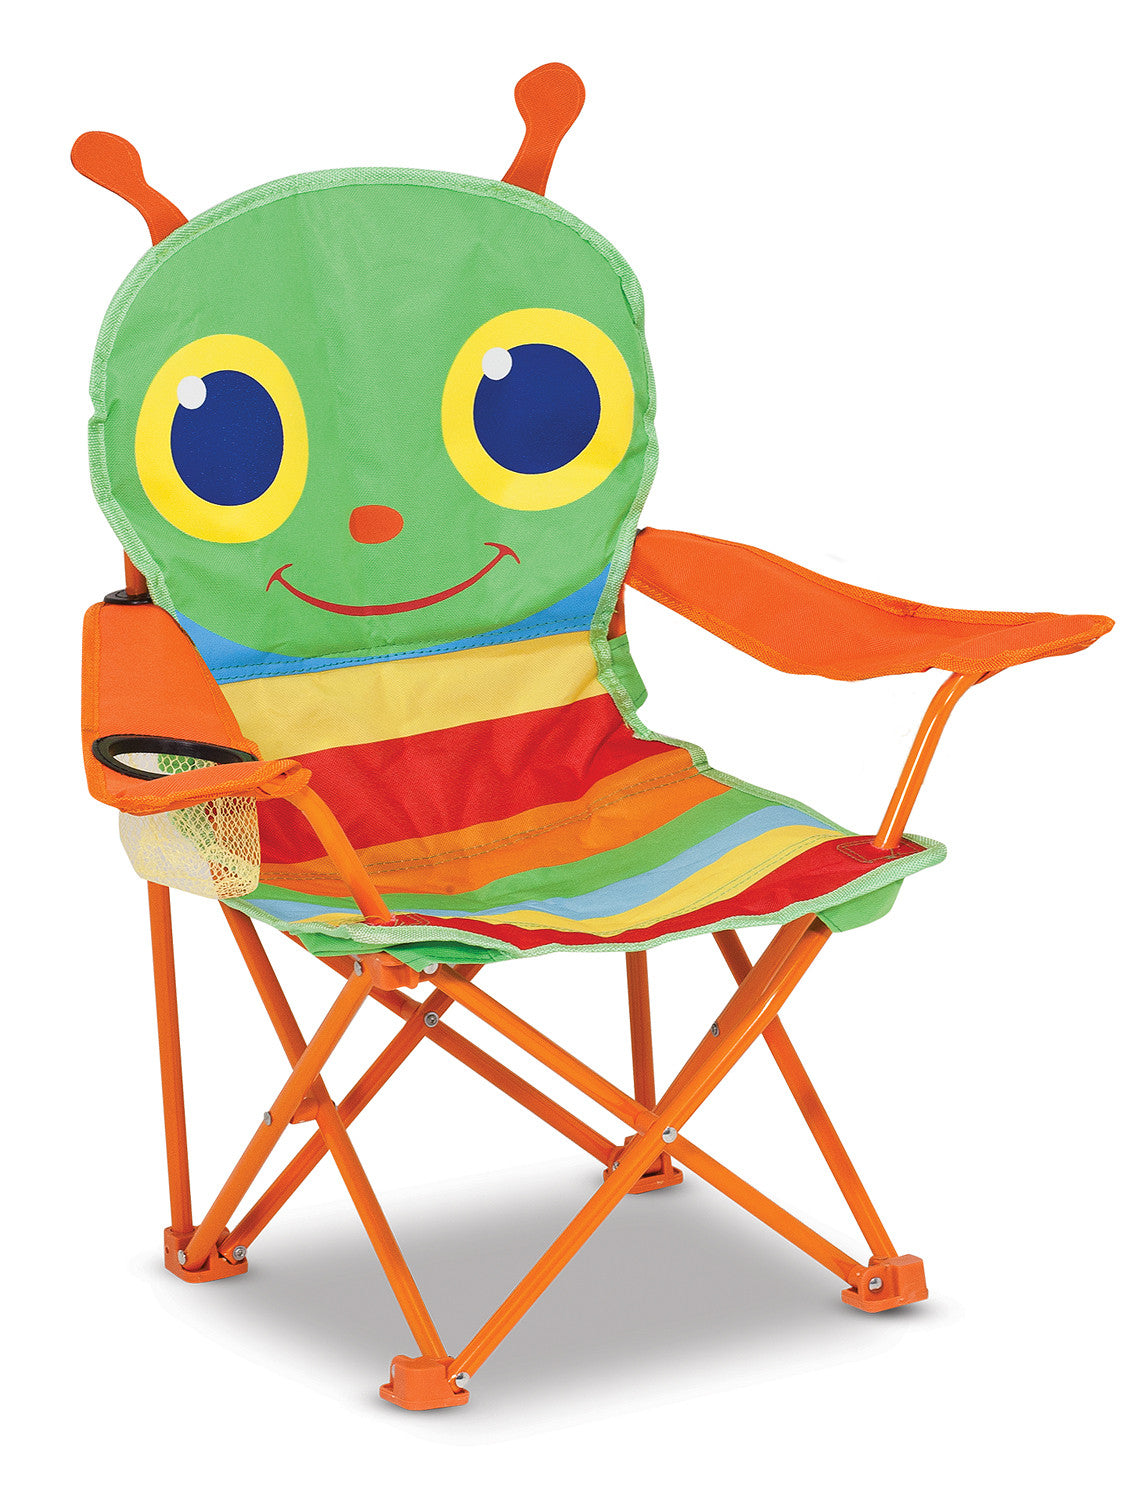 Melissa & Doug Happy Giddy Child's Outdoor Chair 6174